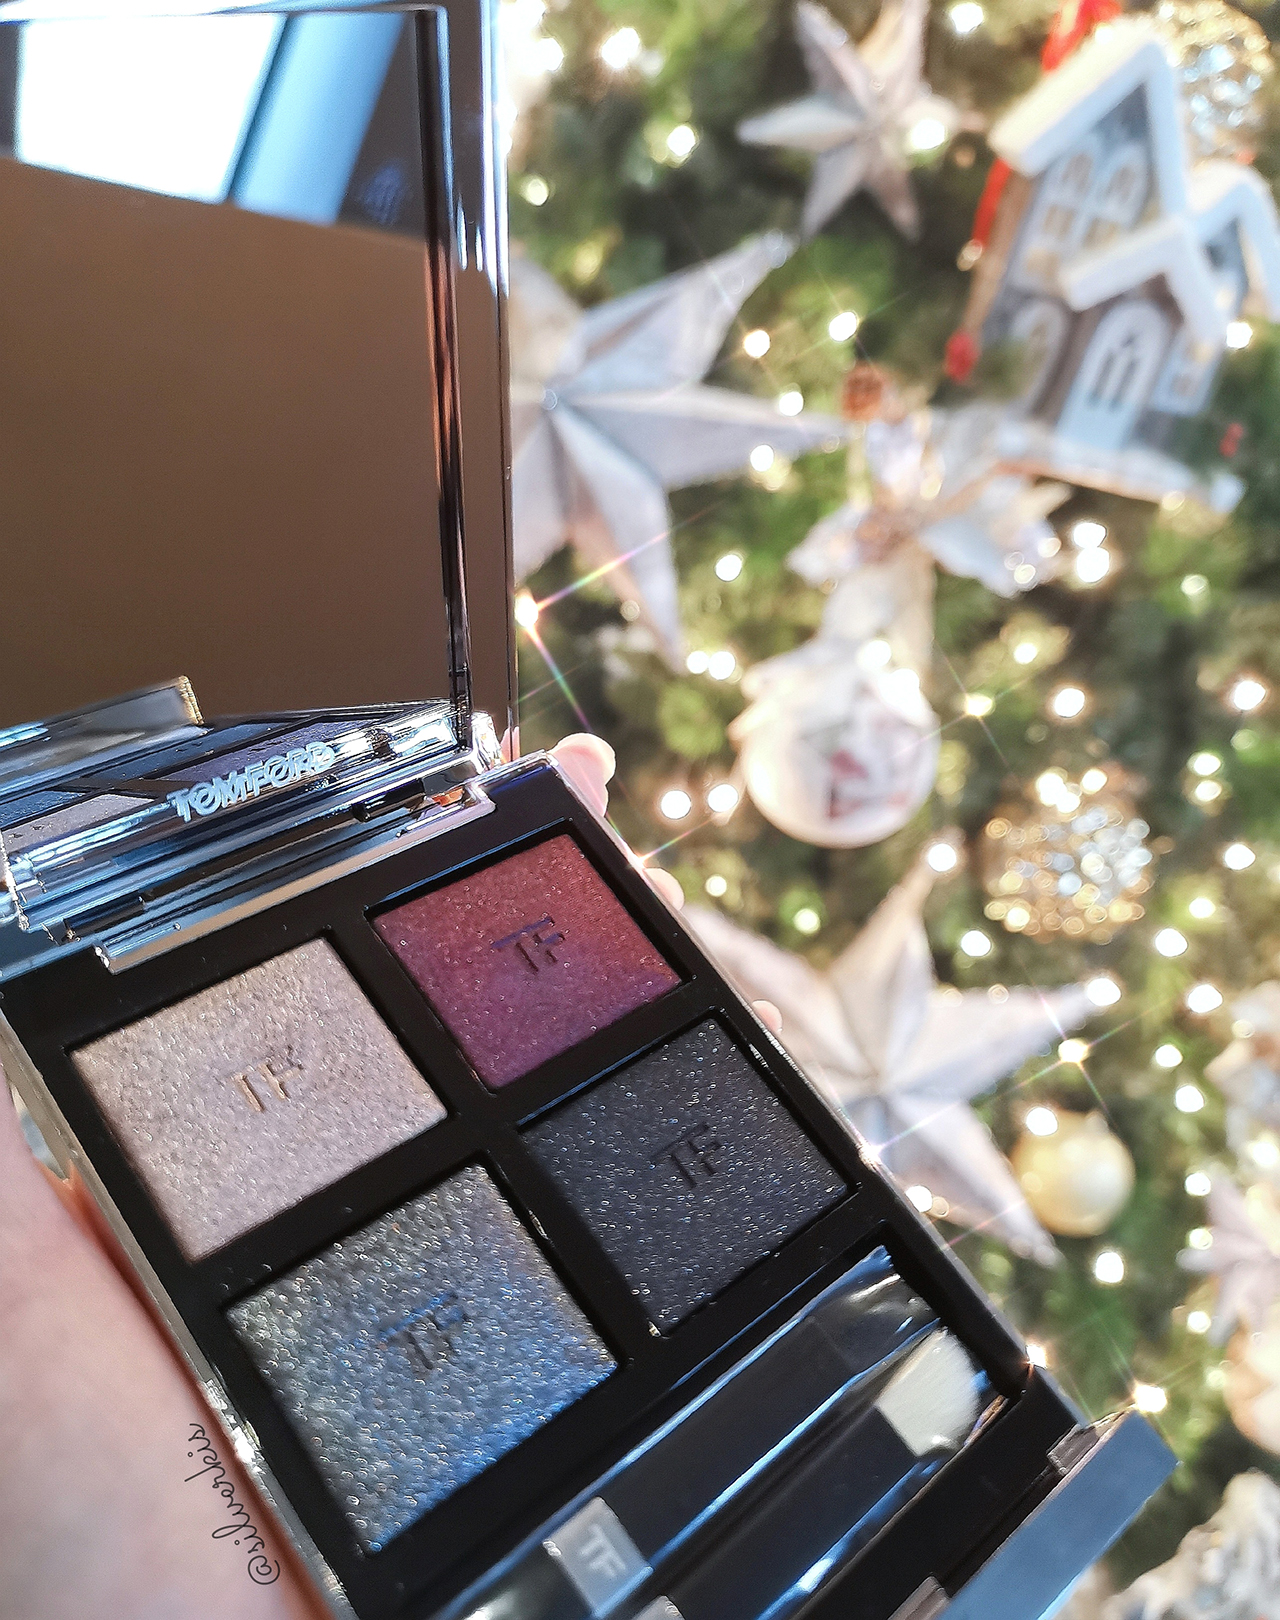 Tom Ford Extreme Eye Color Quad in Badass